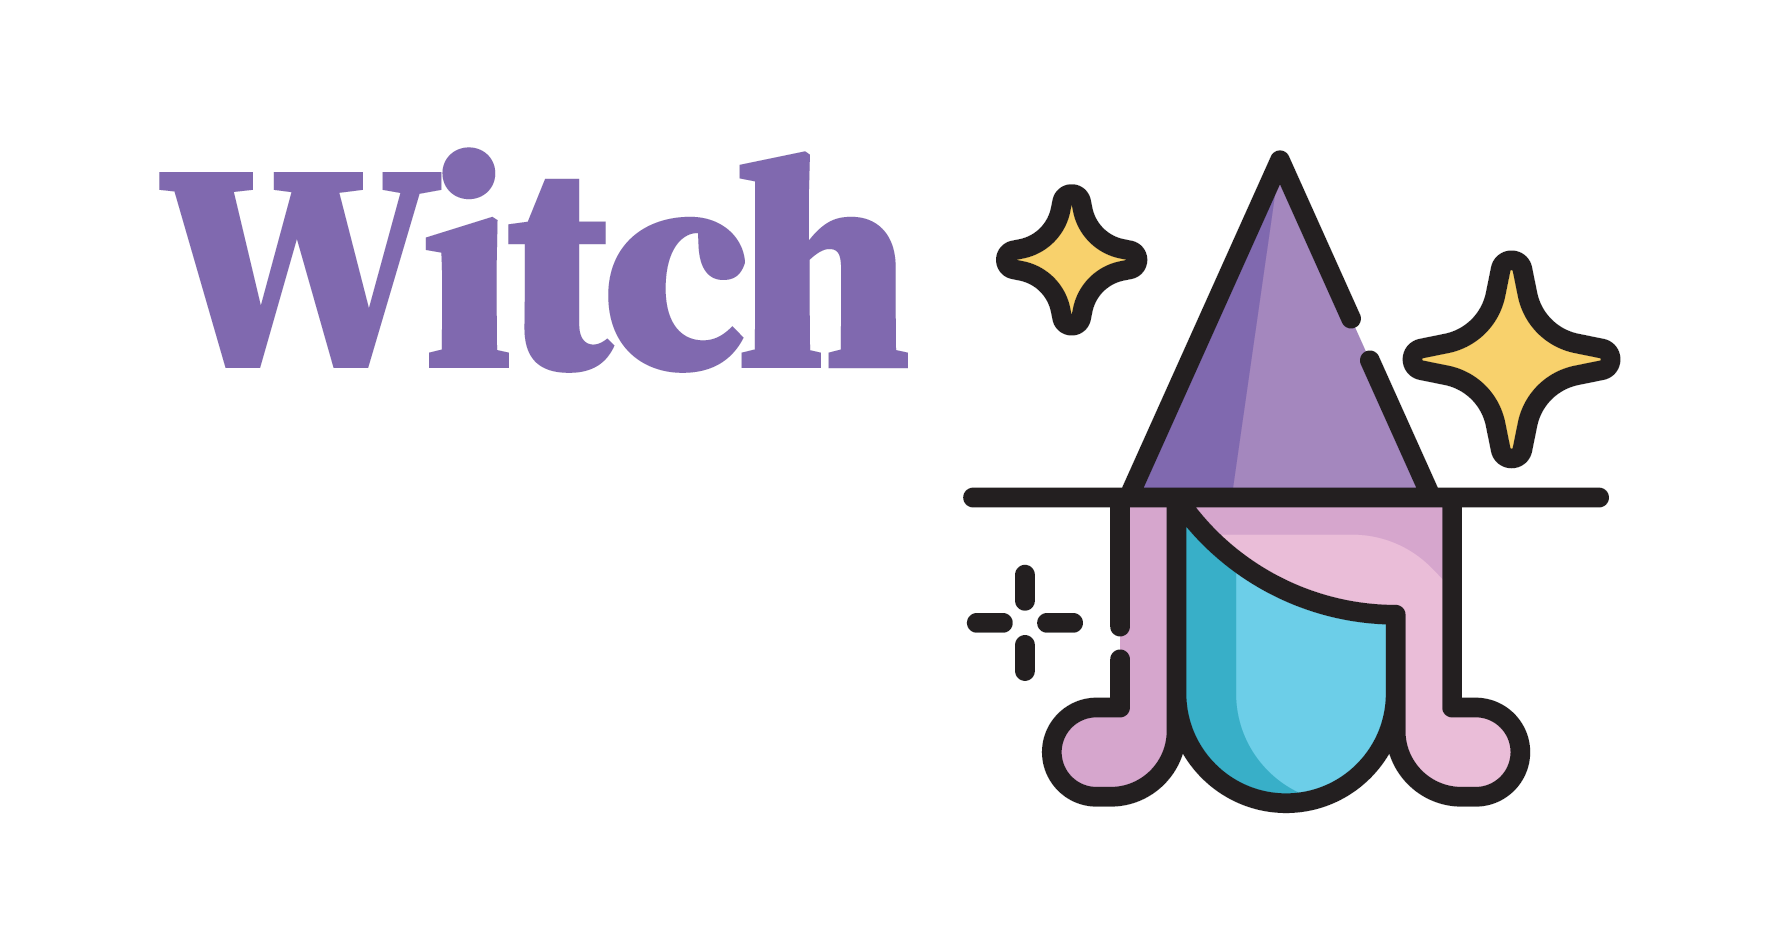 An introduction to Witch